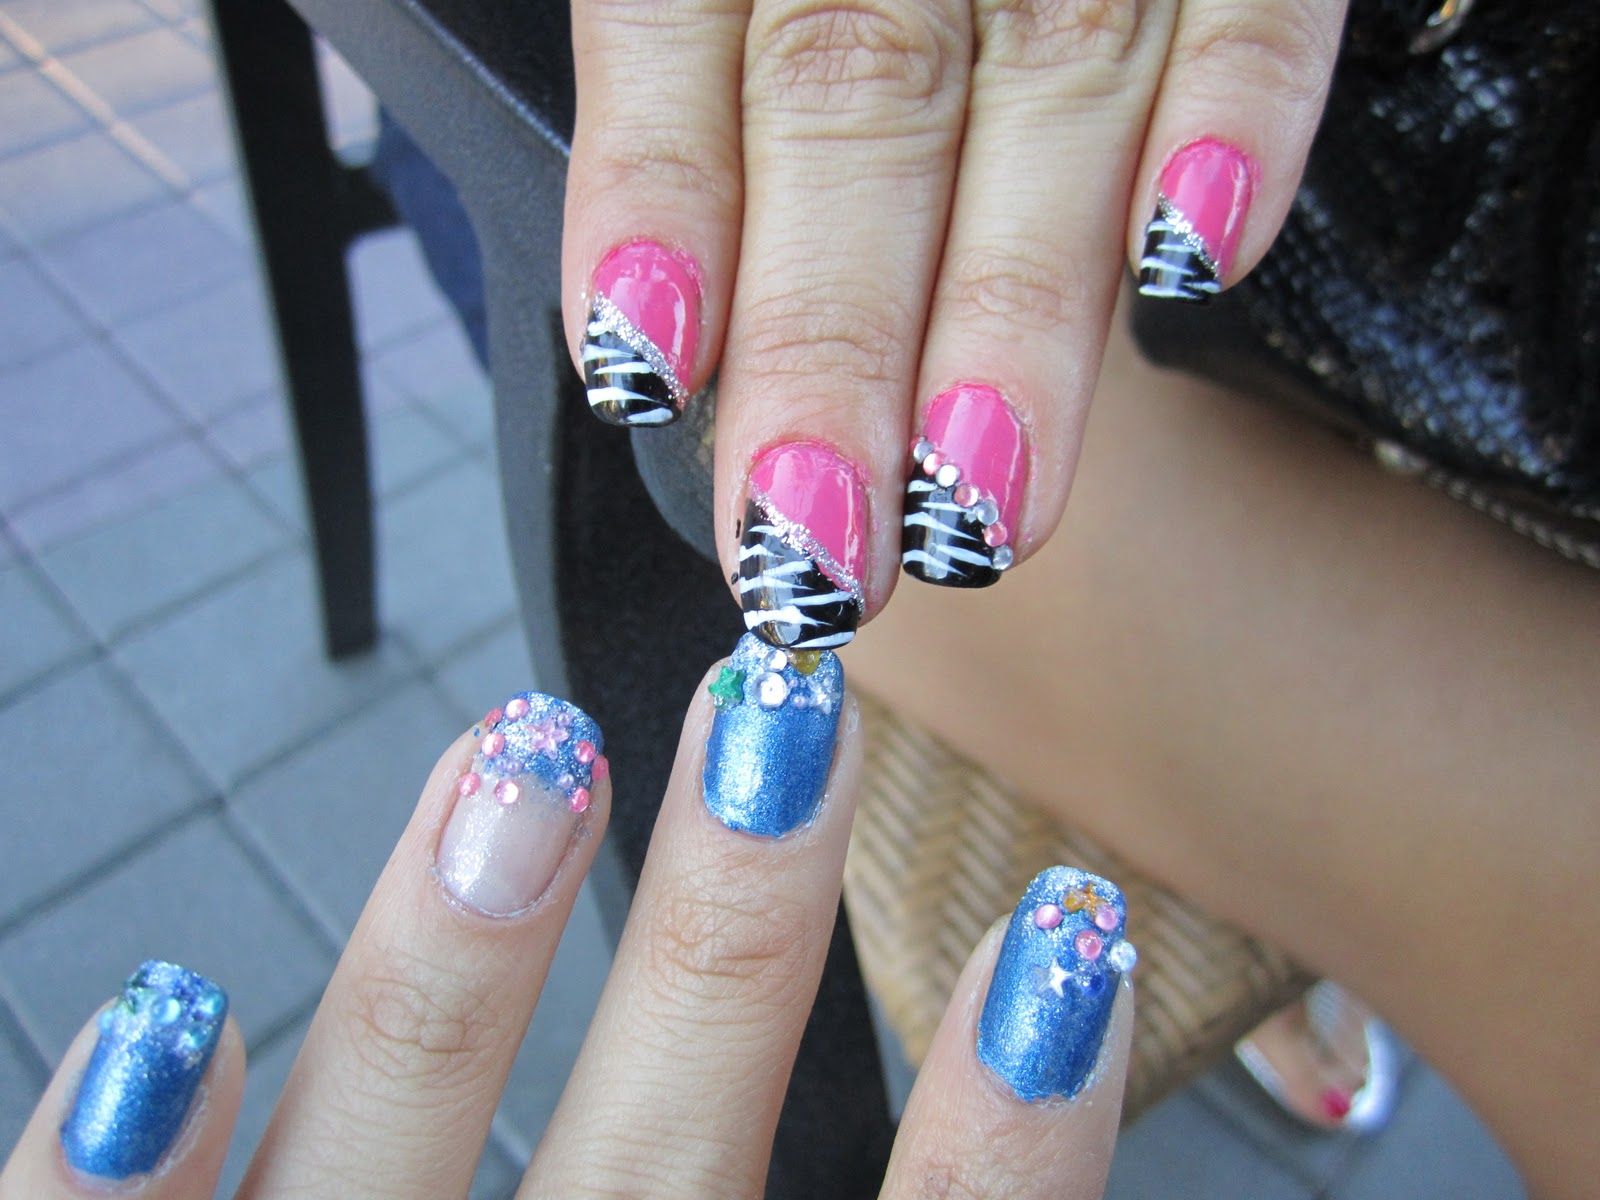 Zebra Print Nail Design For Short Nails - Anna Charlotta